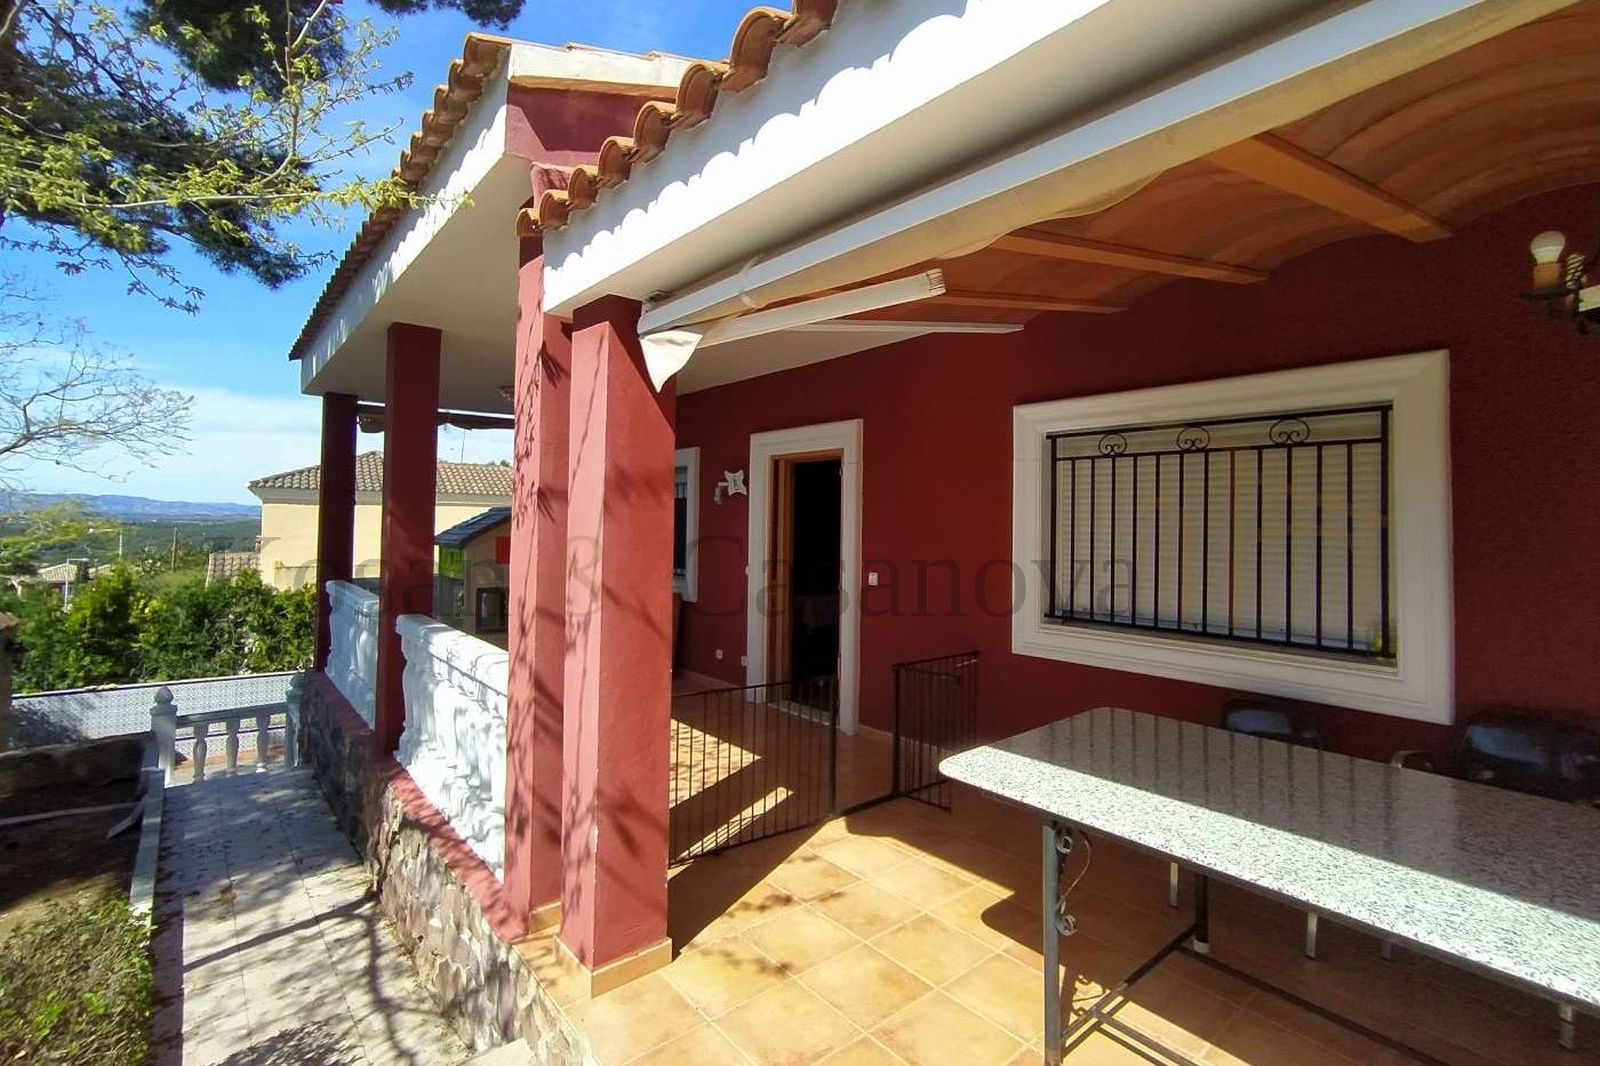 Valencia - Chalet with pool in a good residential area